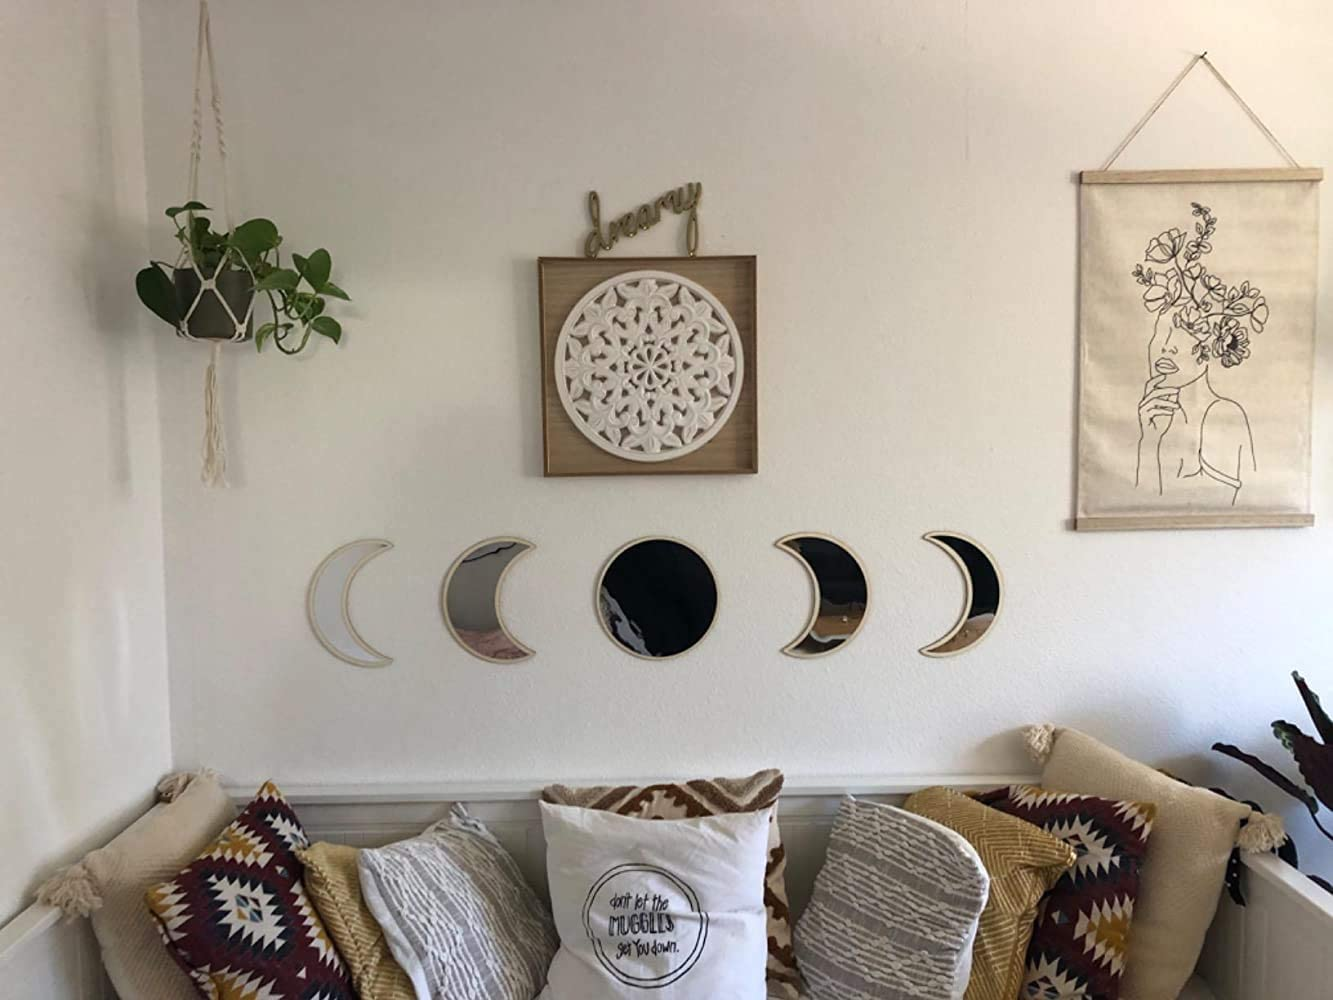 Hciszl 5pcs Set Scandinavian Moon Phase Mirror Wall Decor for Home Living Room Bedroom – Wooden Frame Decorative Acrylic Mirrors Bohemian Wall Decoration – No Need to Punch